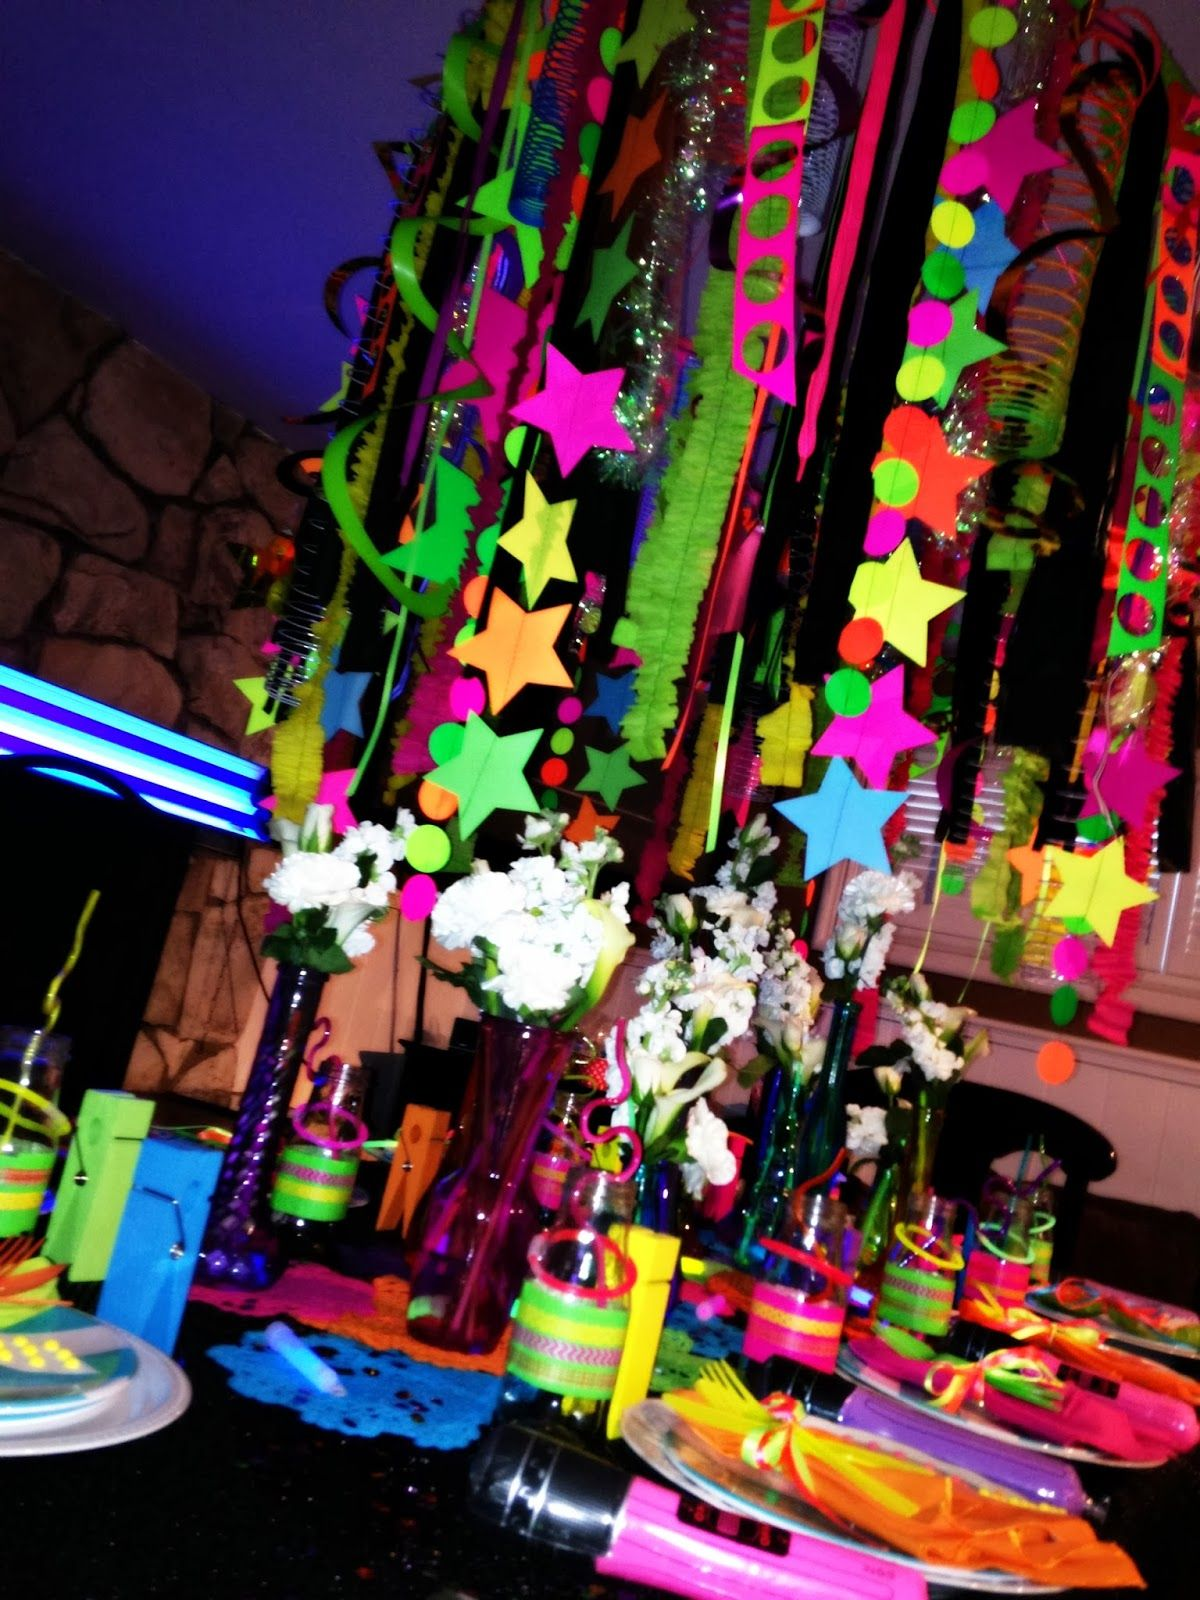 Neon Colored Party Supplies